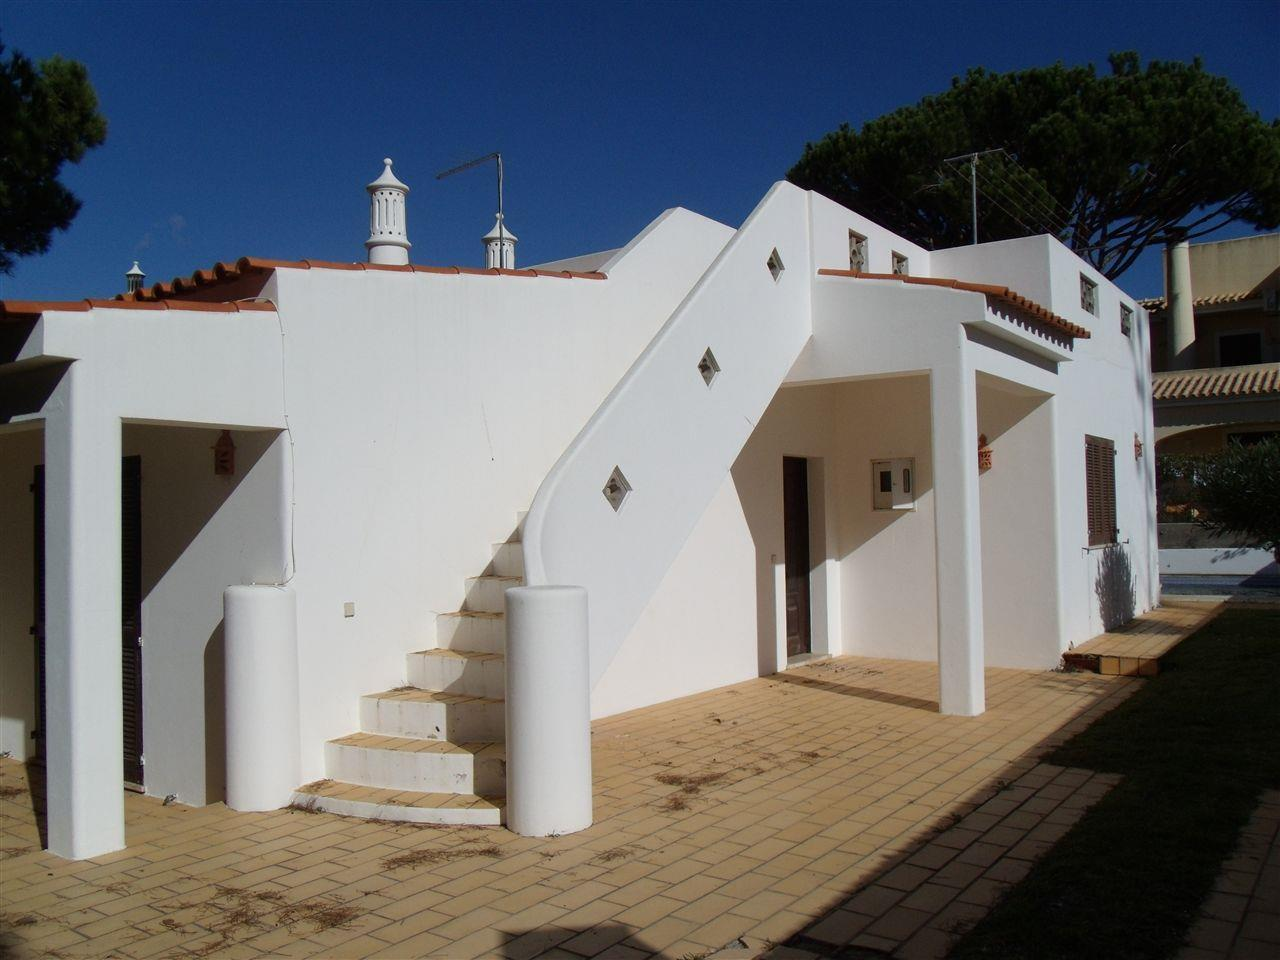 Single Family Home for Sale at Detached house, 2 bedrooms, for Sale Loule, Algarve Portugal